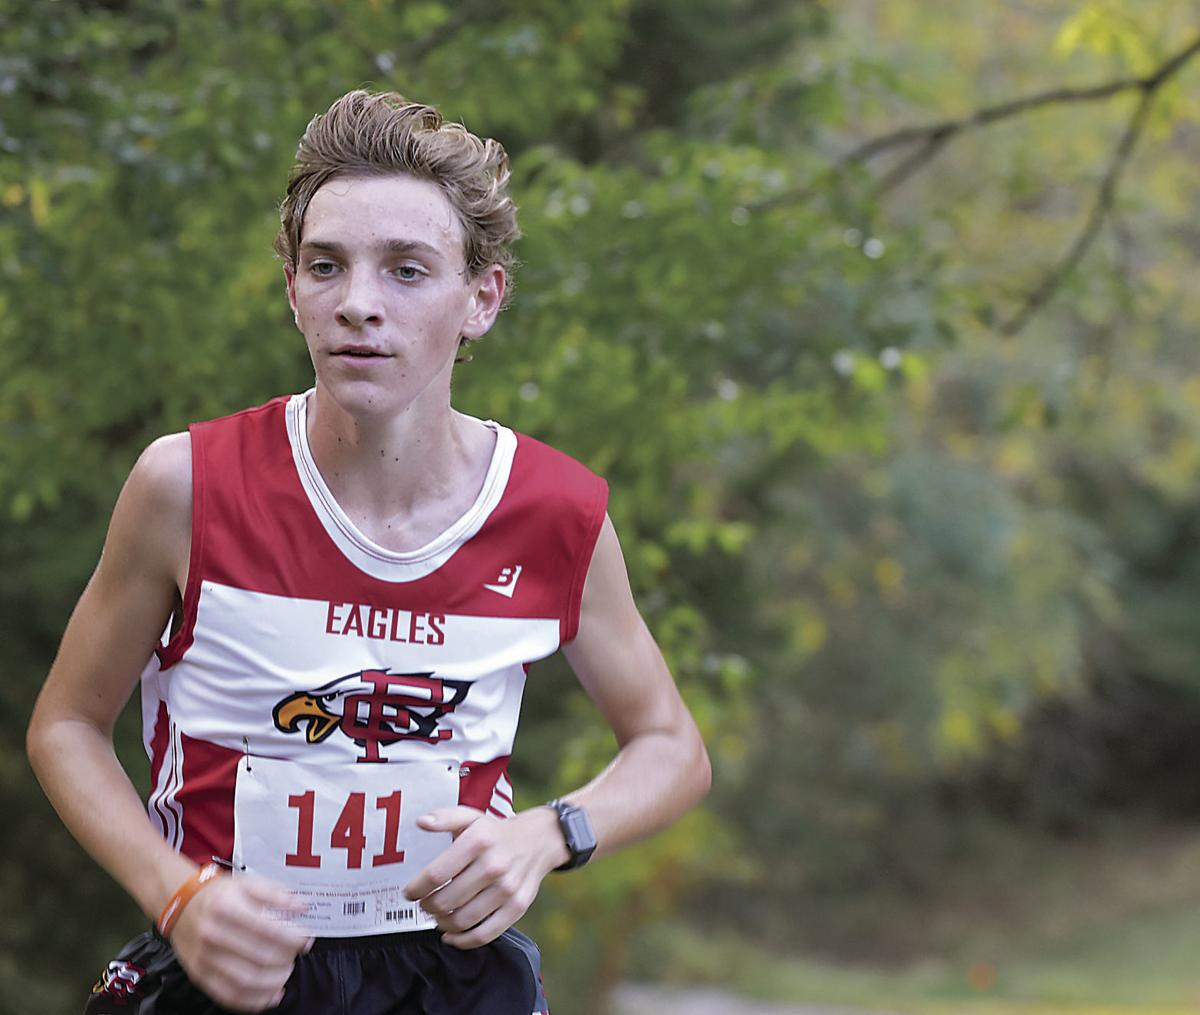 Atchue, Cooper and Shorter earn Class 6 state berths